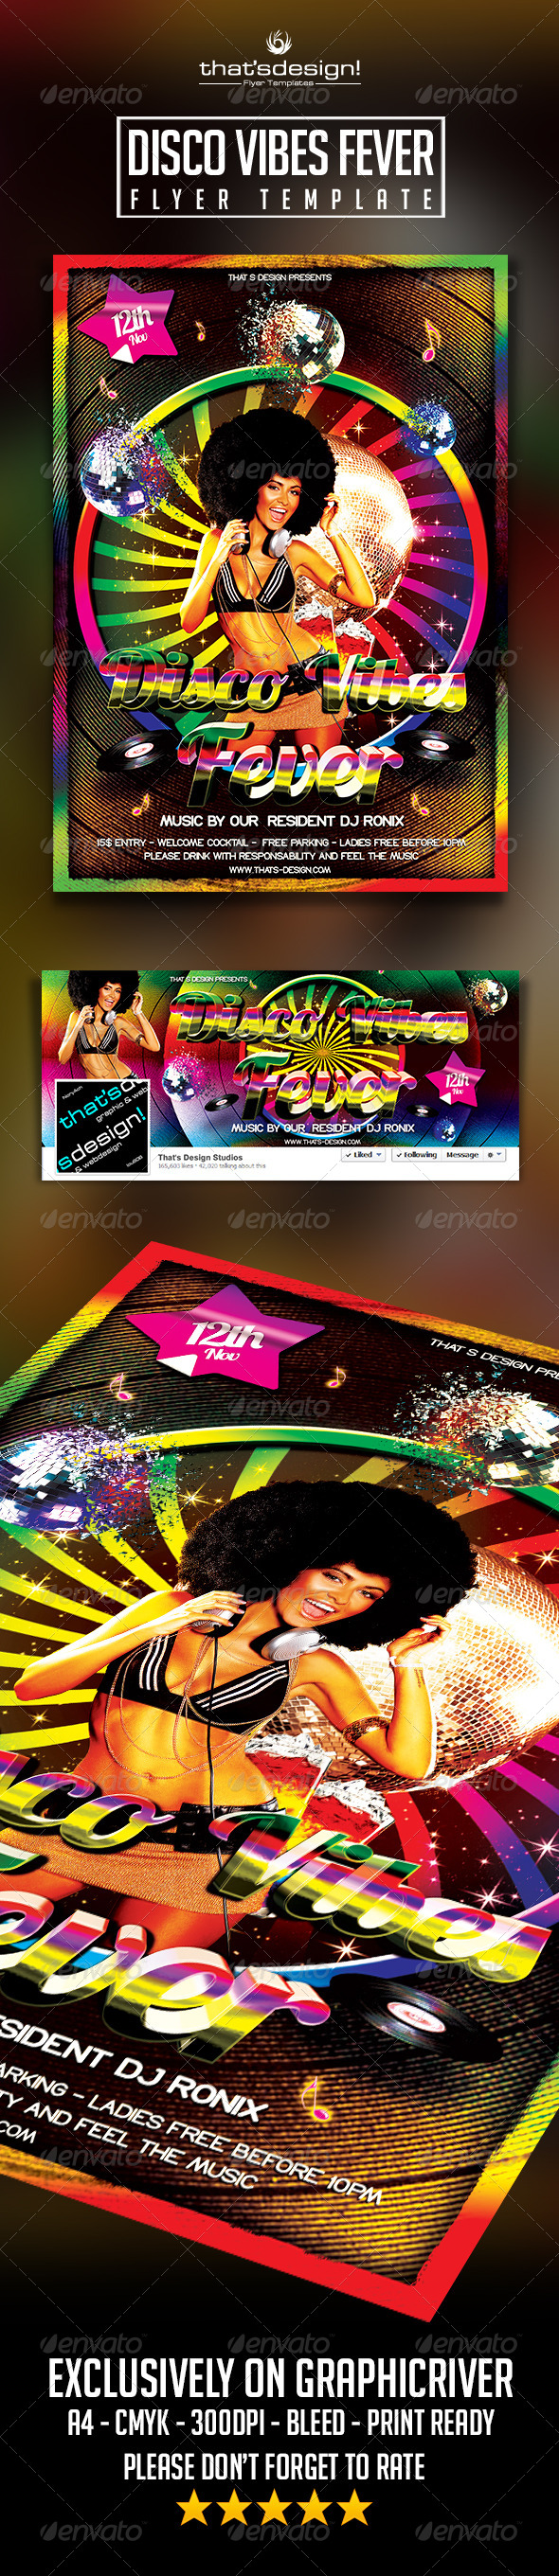 Disco Vibes Fever Flyer Template - Clubs & Parties Events